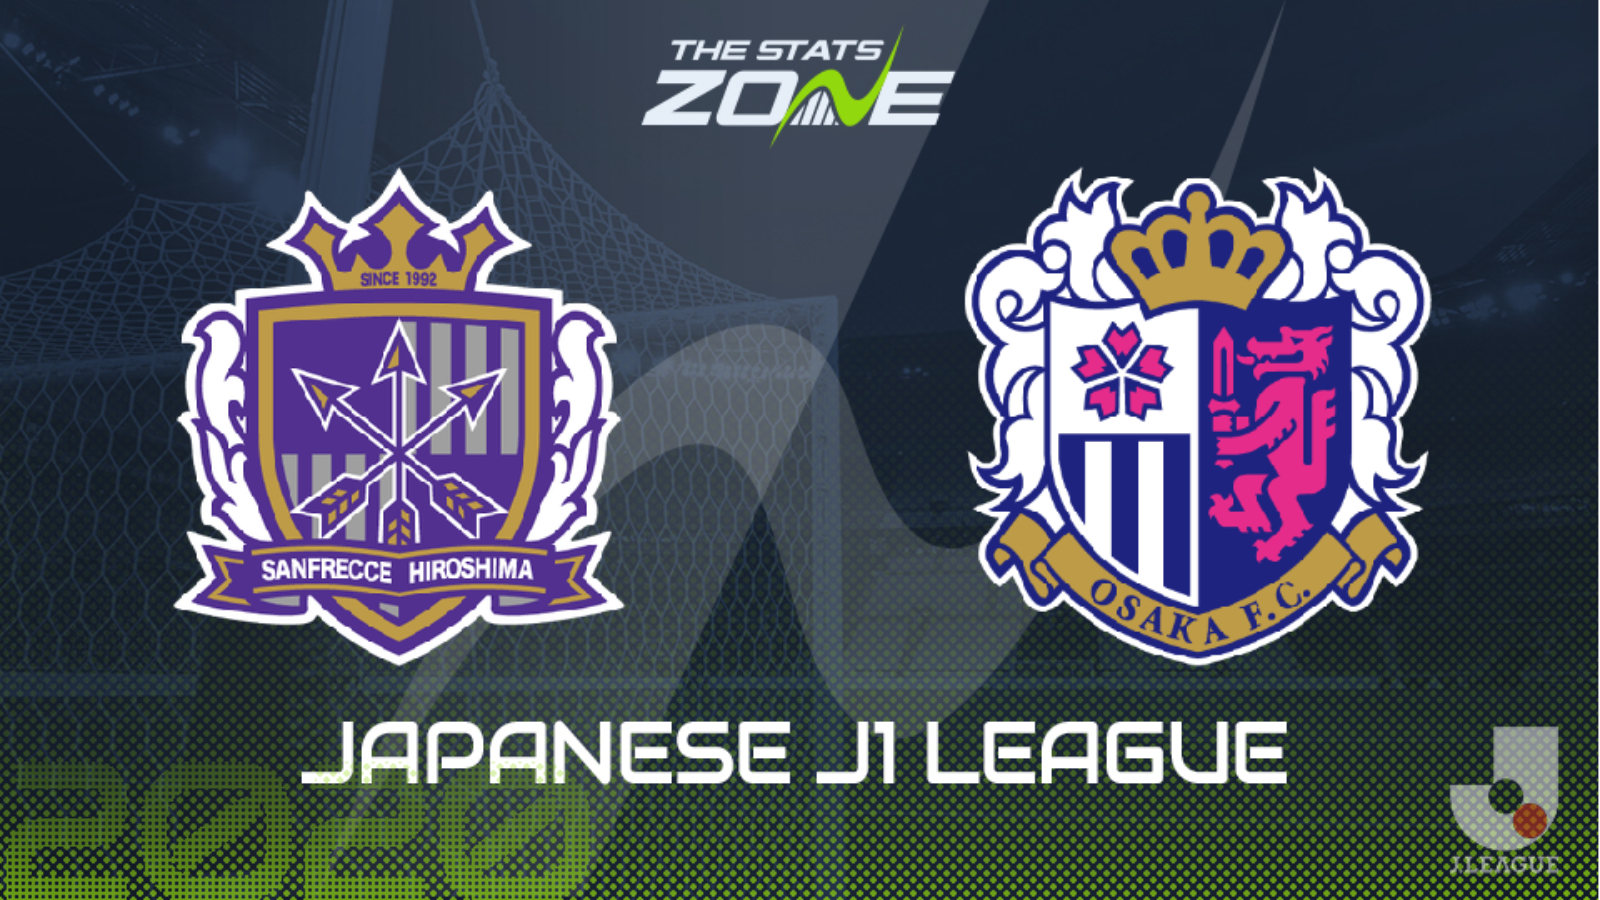 2020 Japanese J1 League Sanfrecce Hiroshima Vs Cerezo Osaka Preview Prediction The Stats Zone